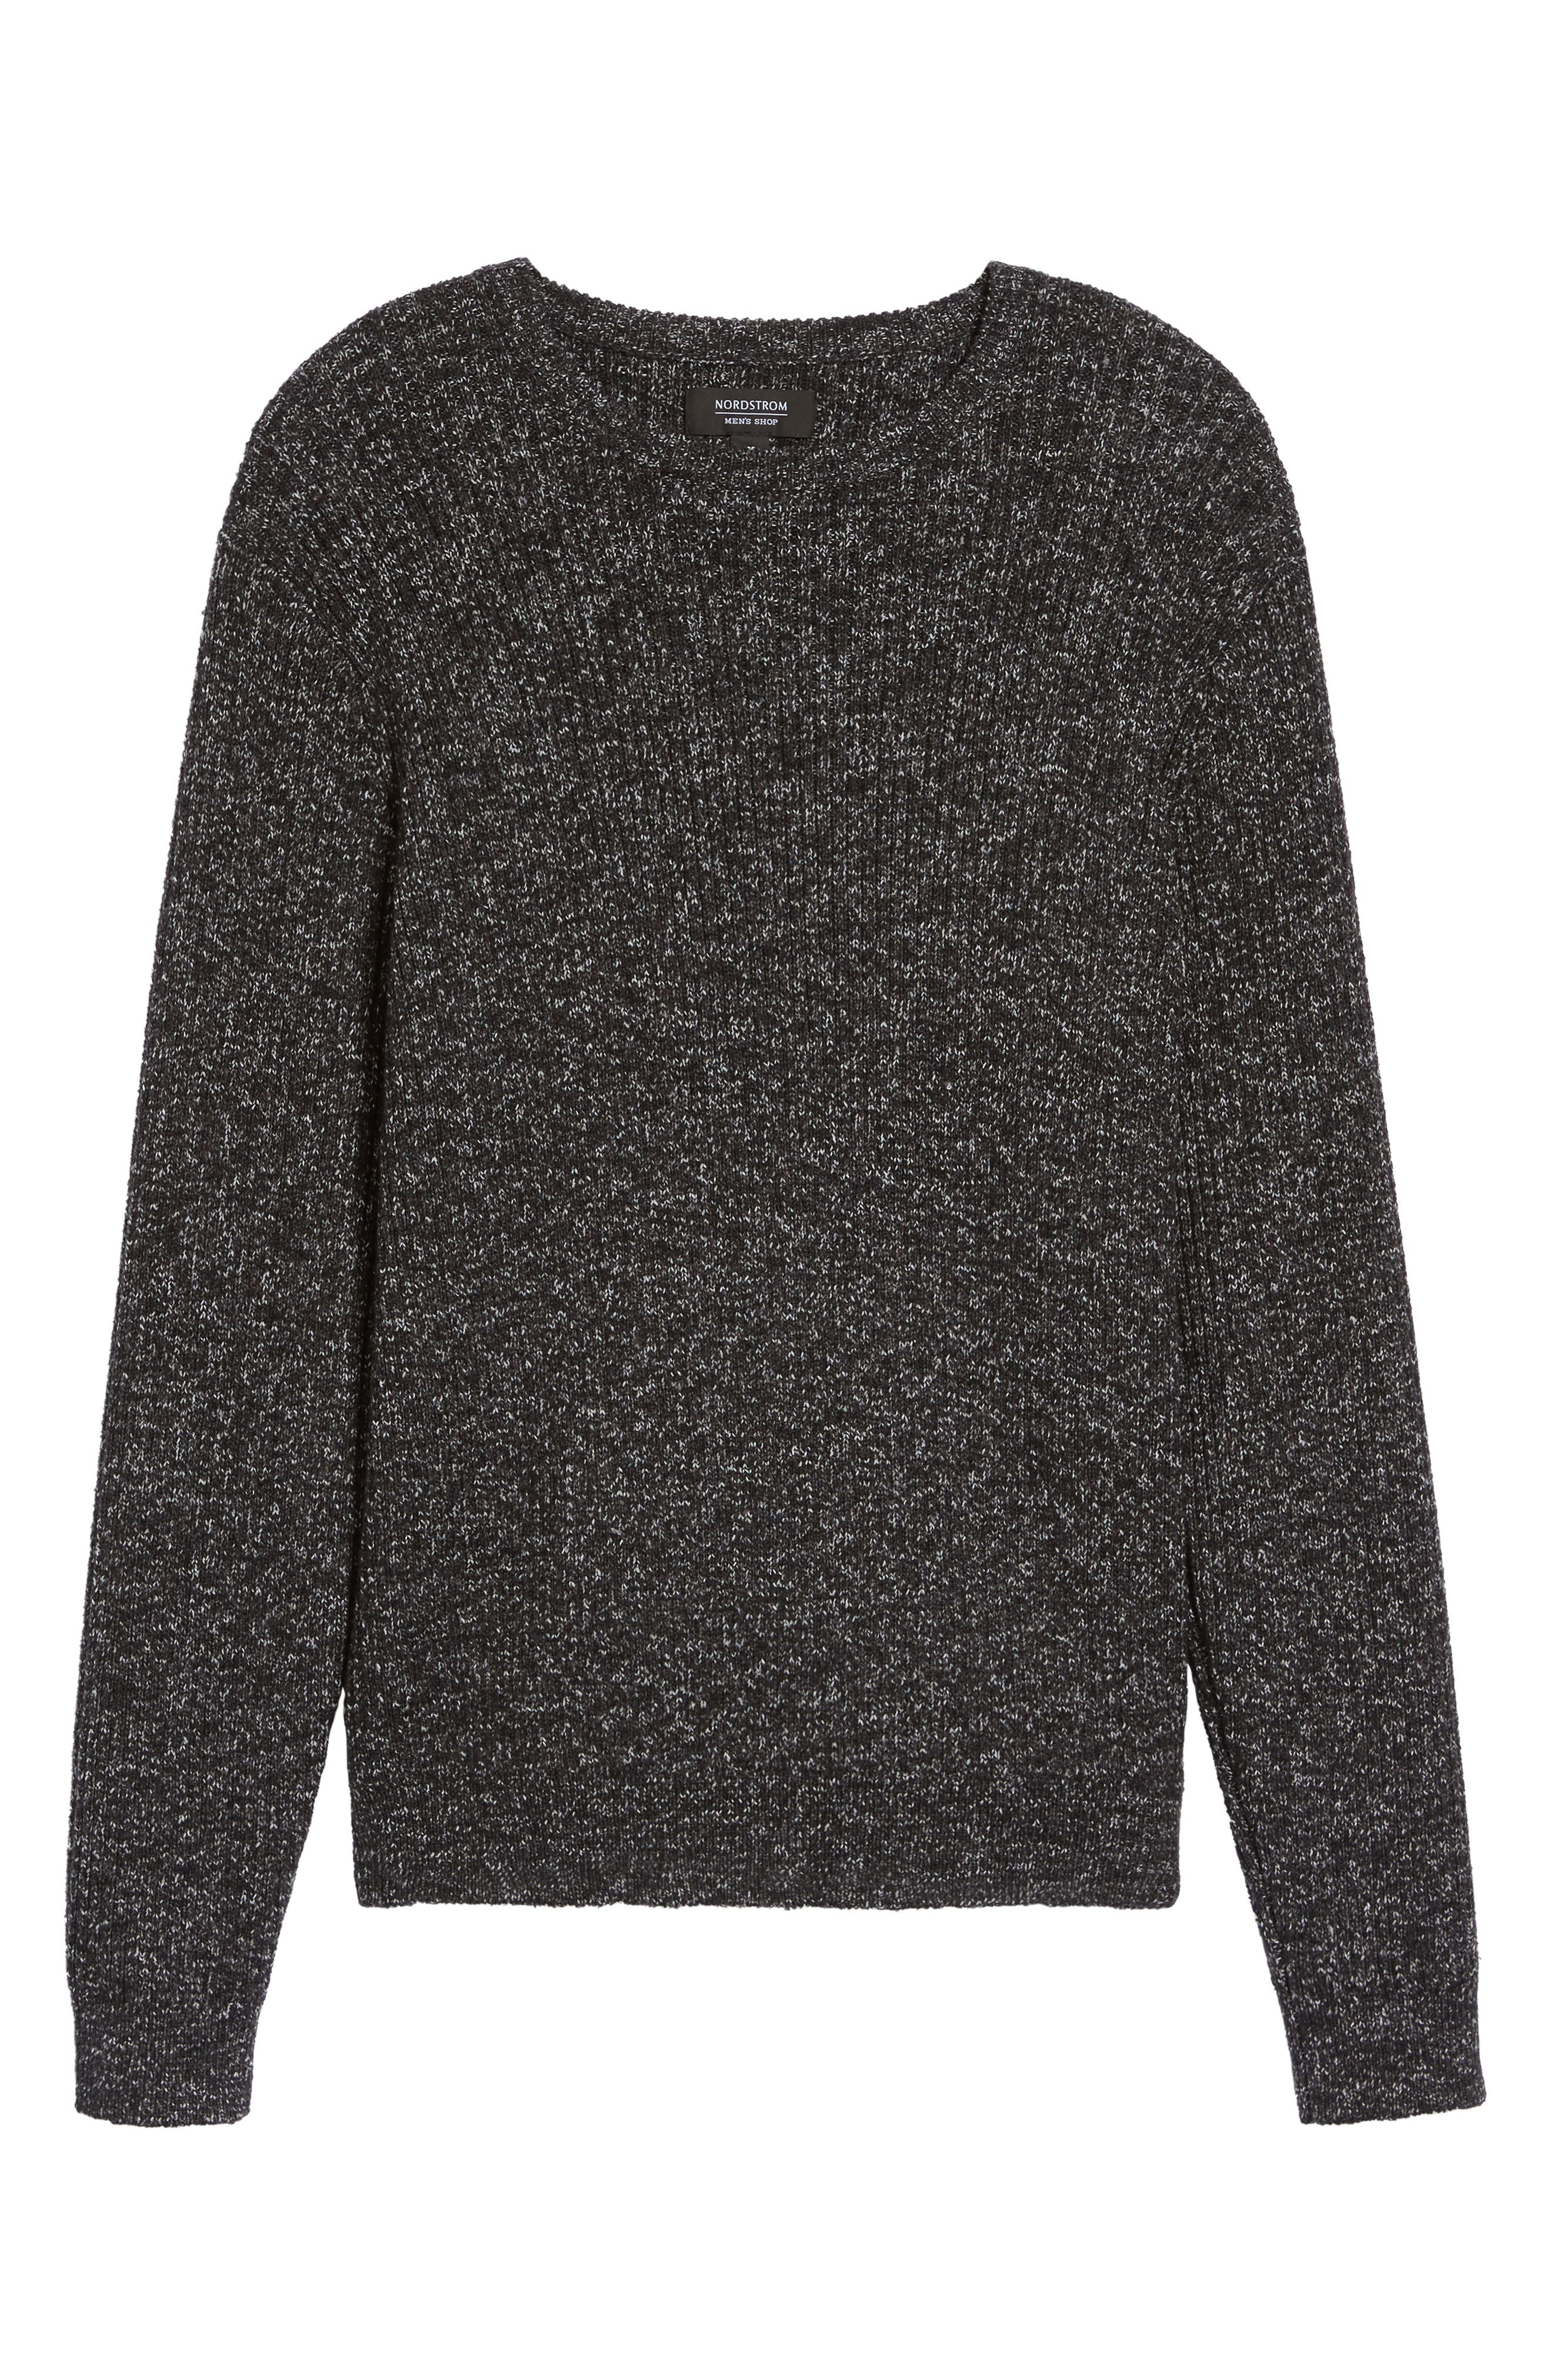 Donegal Space Dye Nep Sweater,                             Alternate thumbnail 6, color,                             Charcoal Donegal